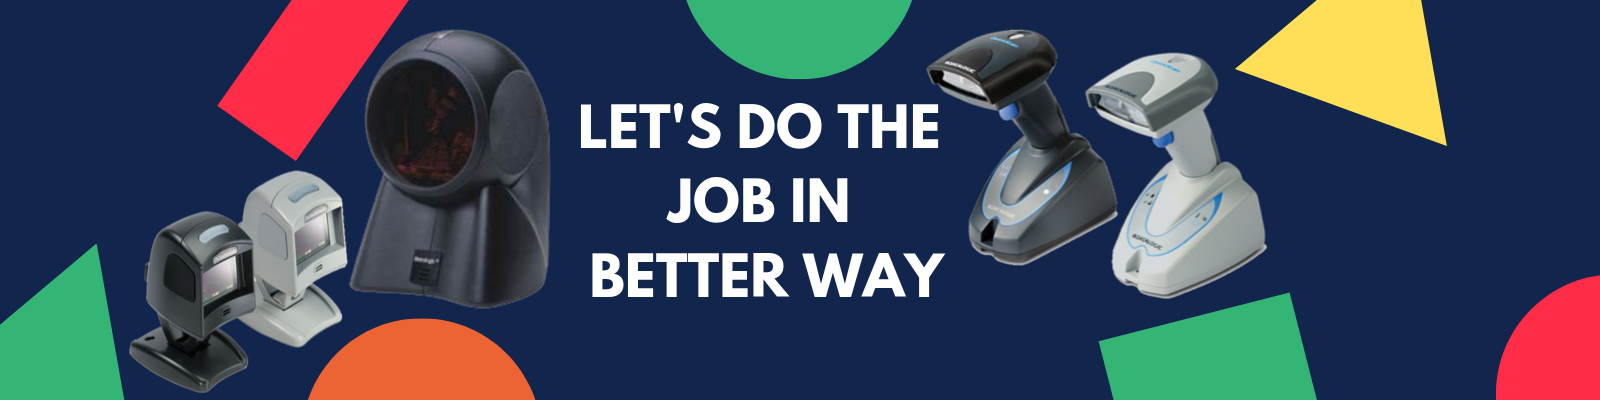 LETS-DO-THE-JOB-IN-BETTER-WAY